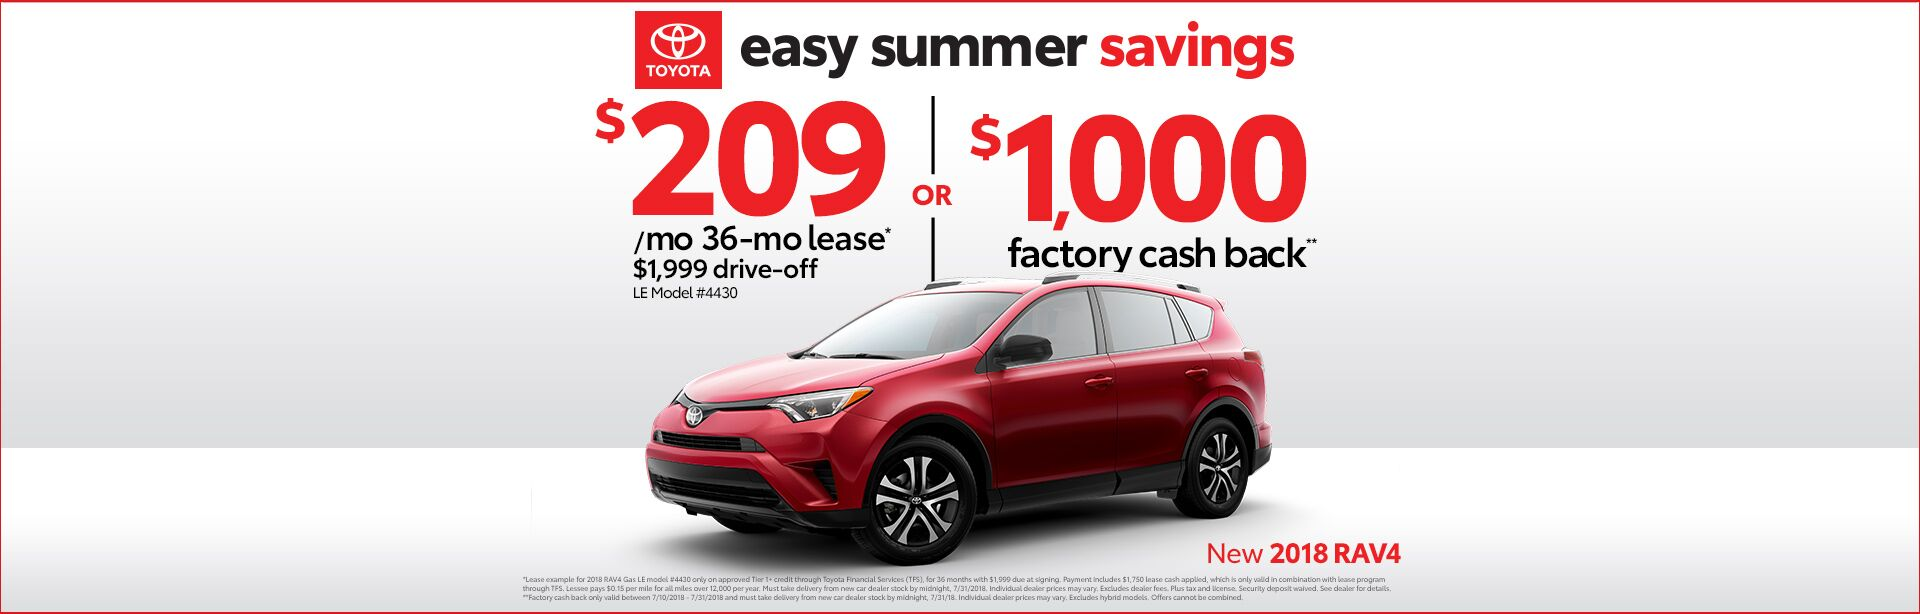 Easy Summer Savings Rav4